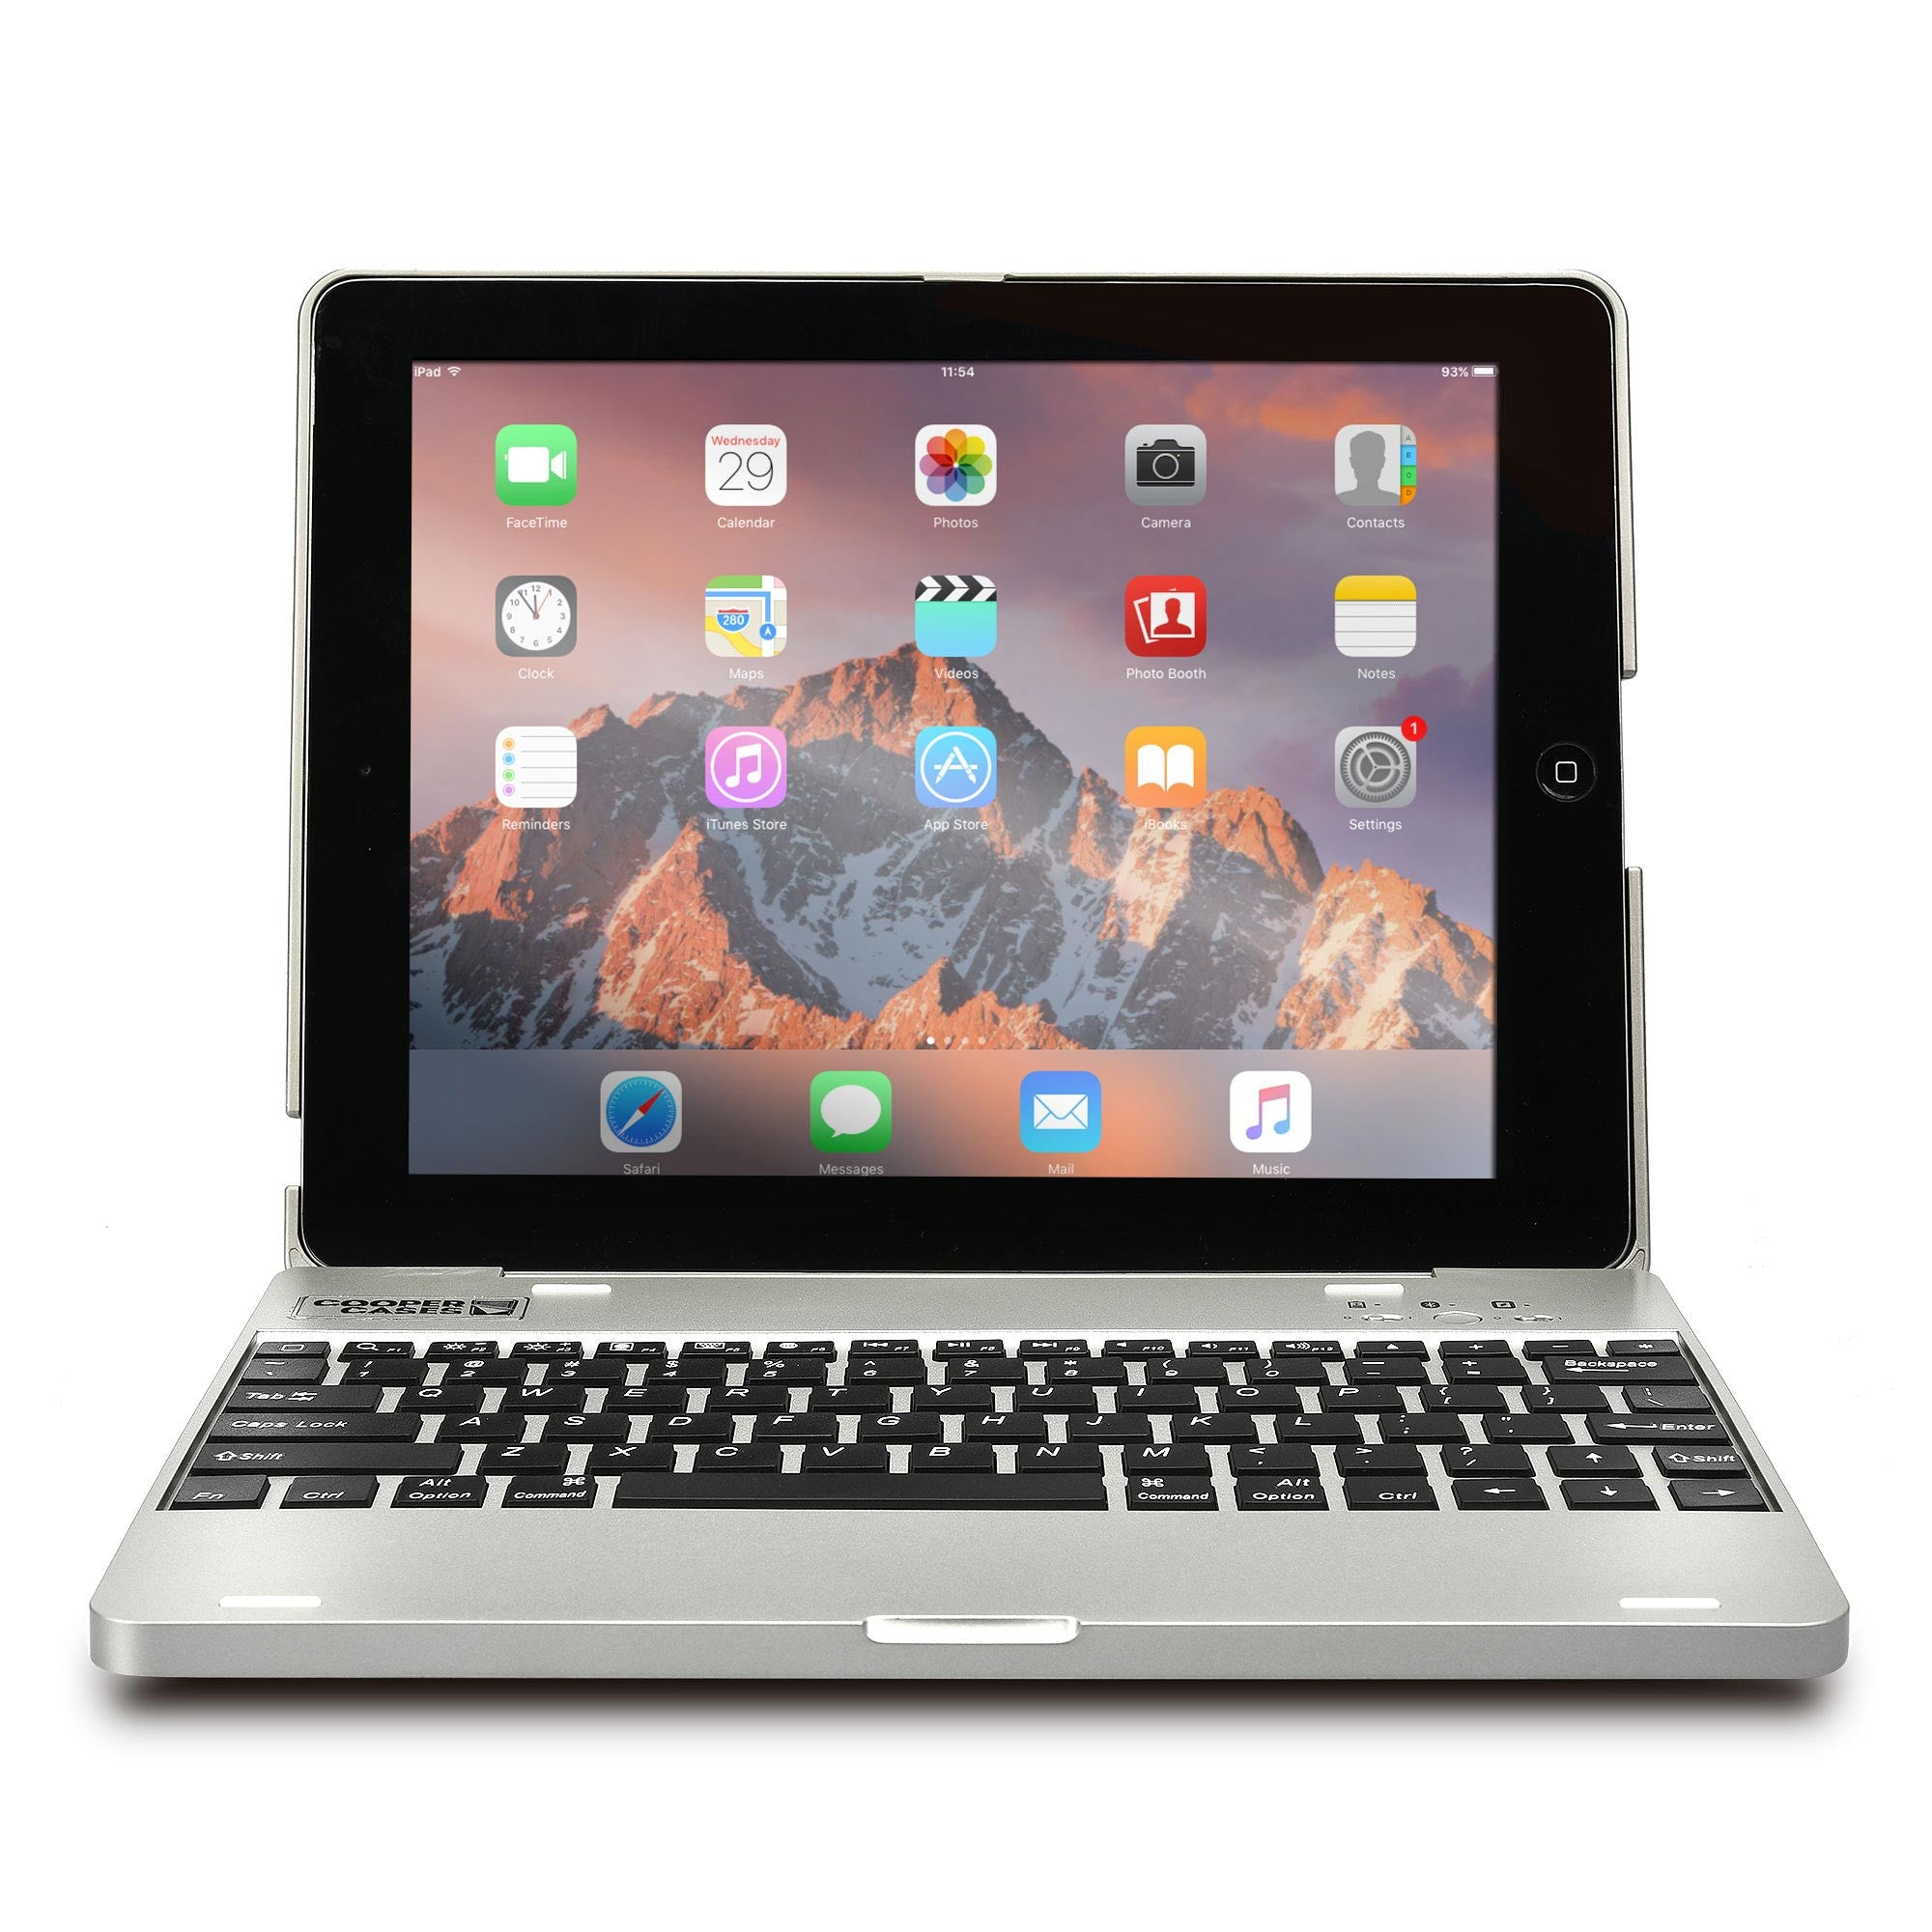 Cooper Kai Skel P1 Clamshell Keyboard Case with Built in Powerbank for Apple iPad 2 3 4